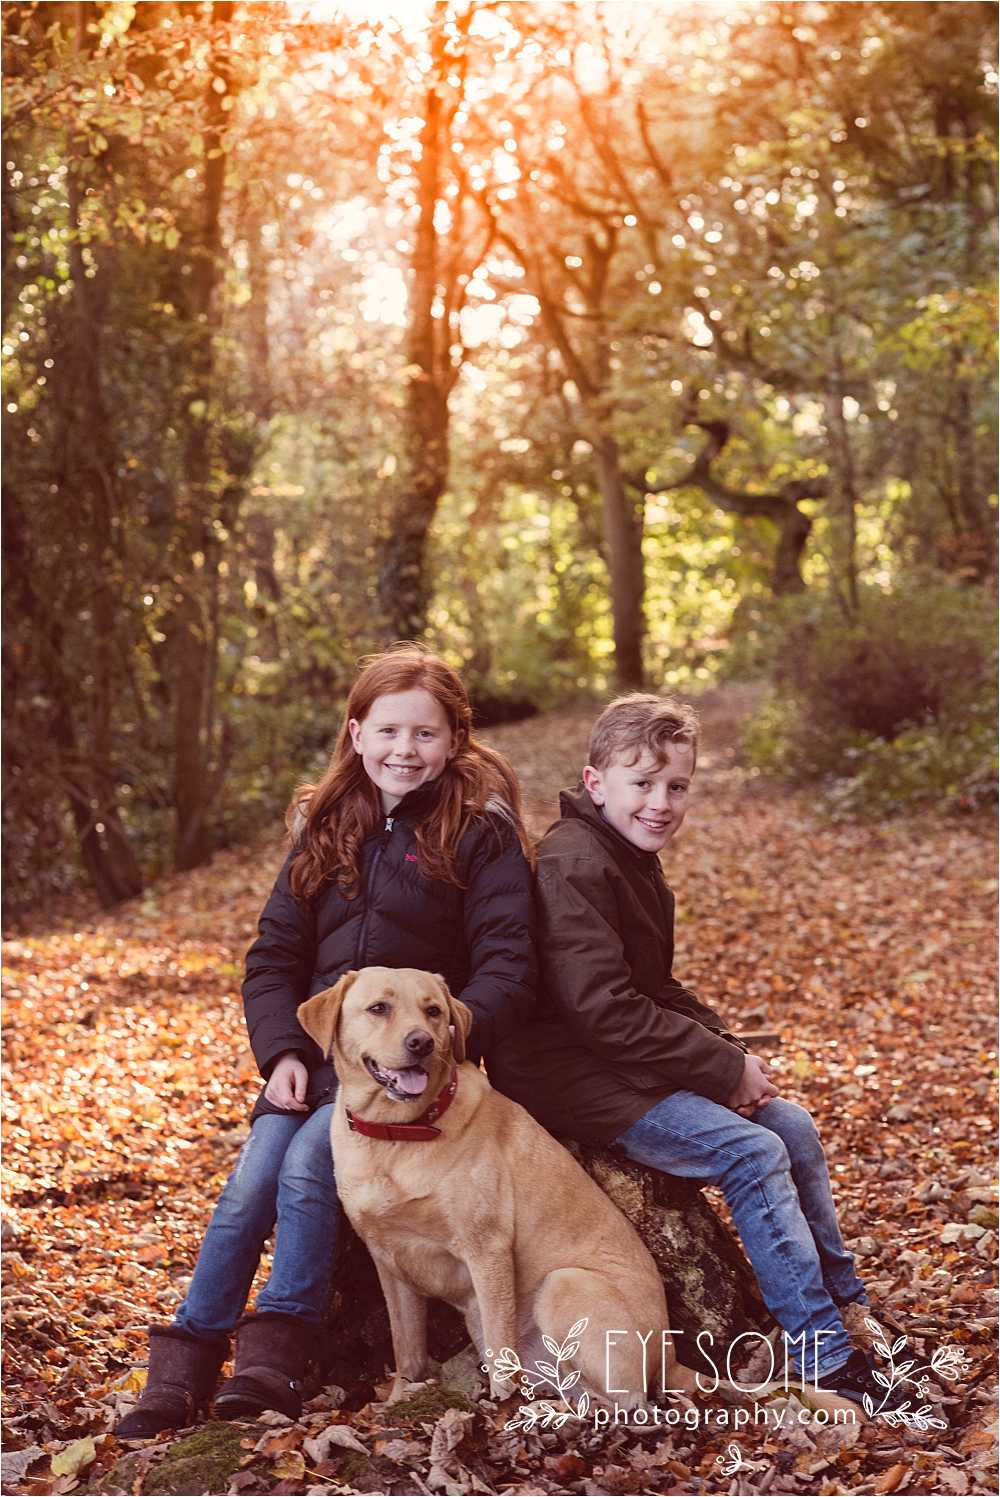 Embracing the autumnal leafy forest floor, Barney sits for the perfect 'me and my dog' portrait